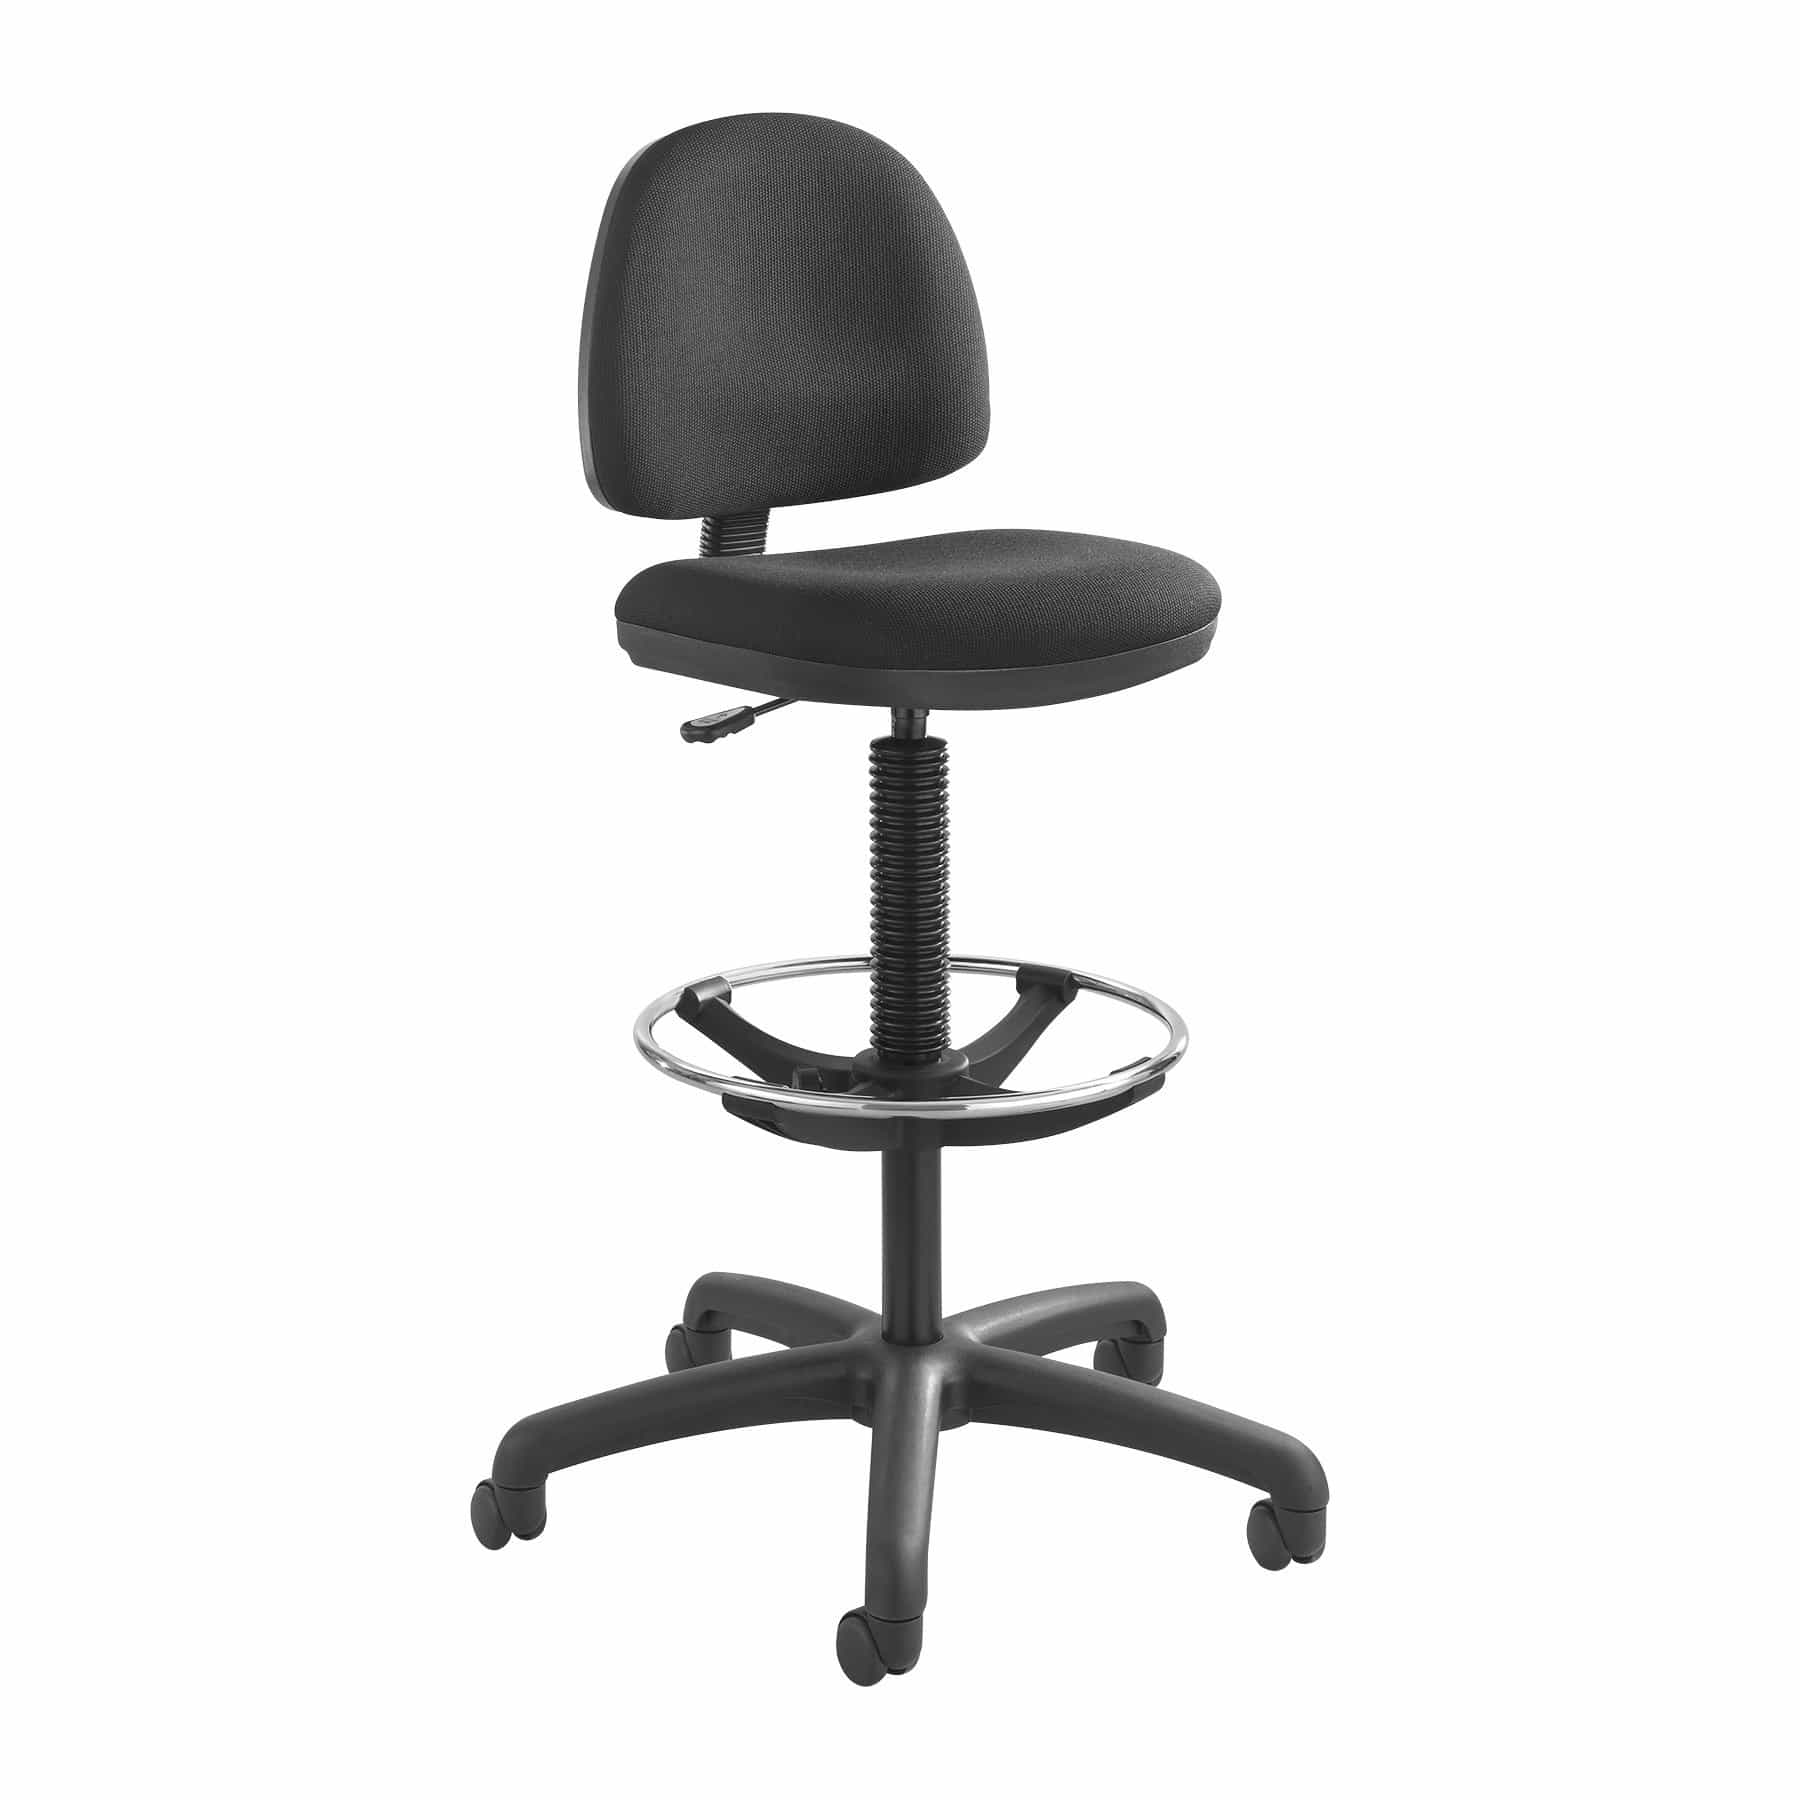 bedinhome - 3401BL Office Work Precision Extended-Height Swivel Black Drafting Chair with Footring & Dual Hooded Casters - Safco - Drafting Chair